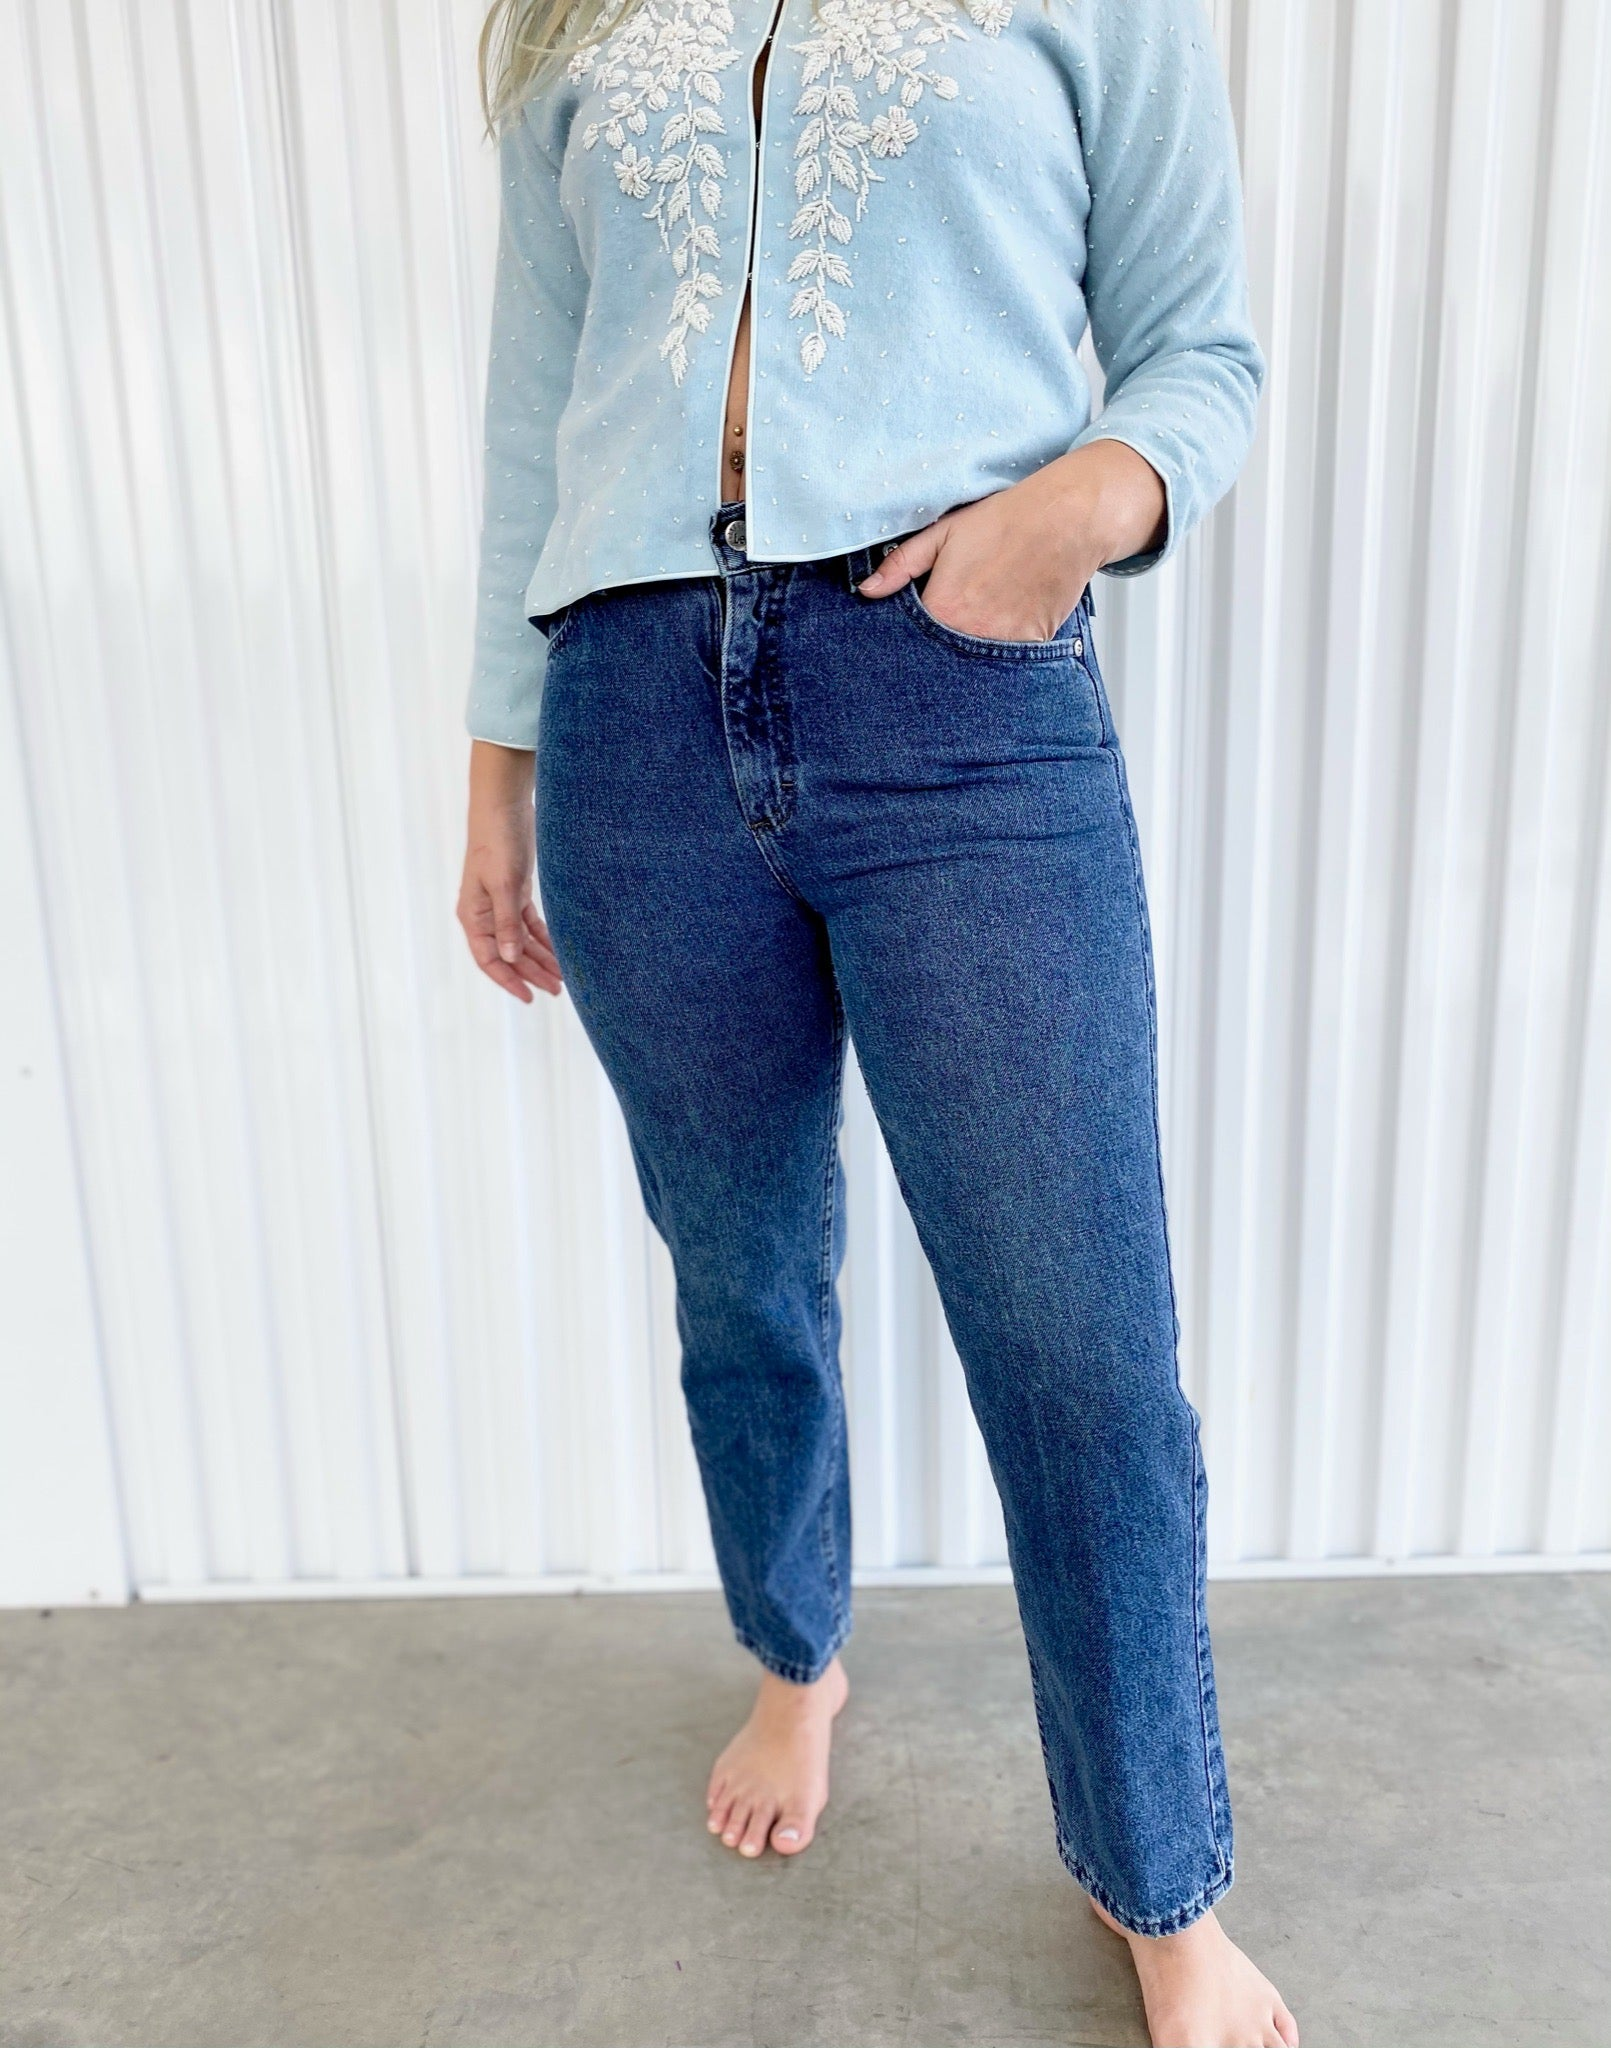 Lee Dark Wash Jeans (31)